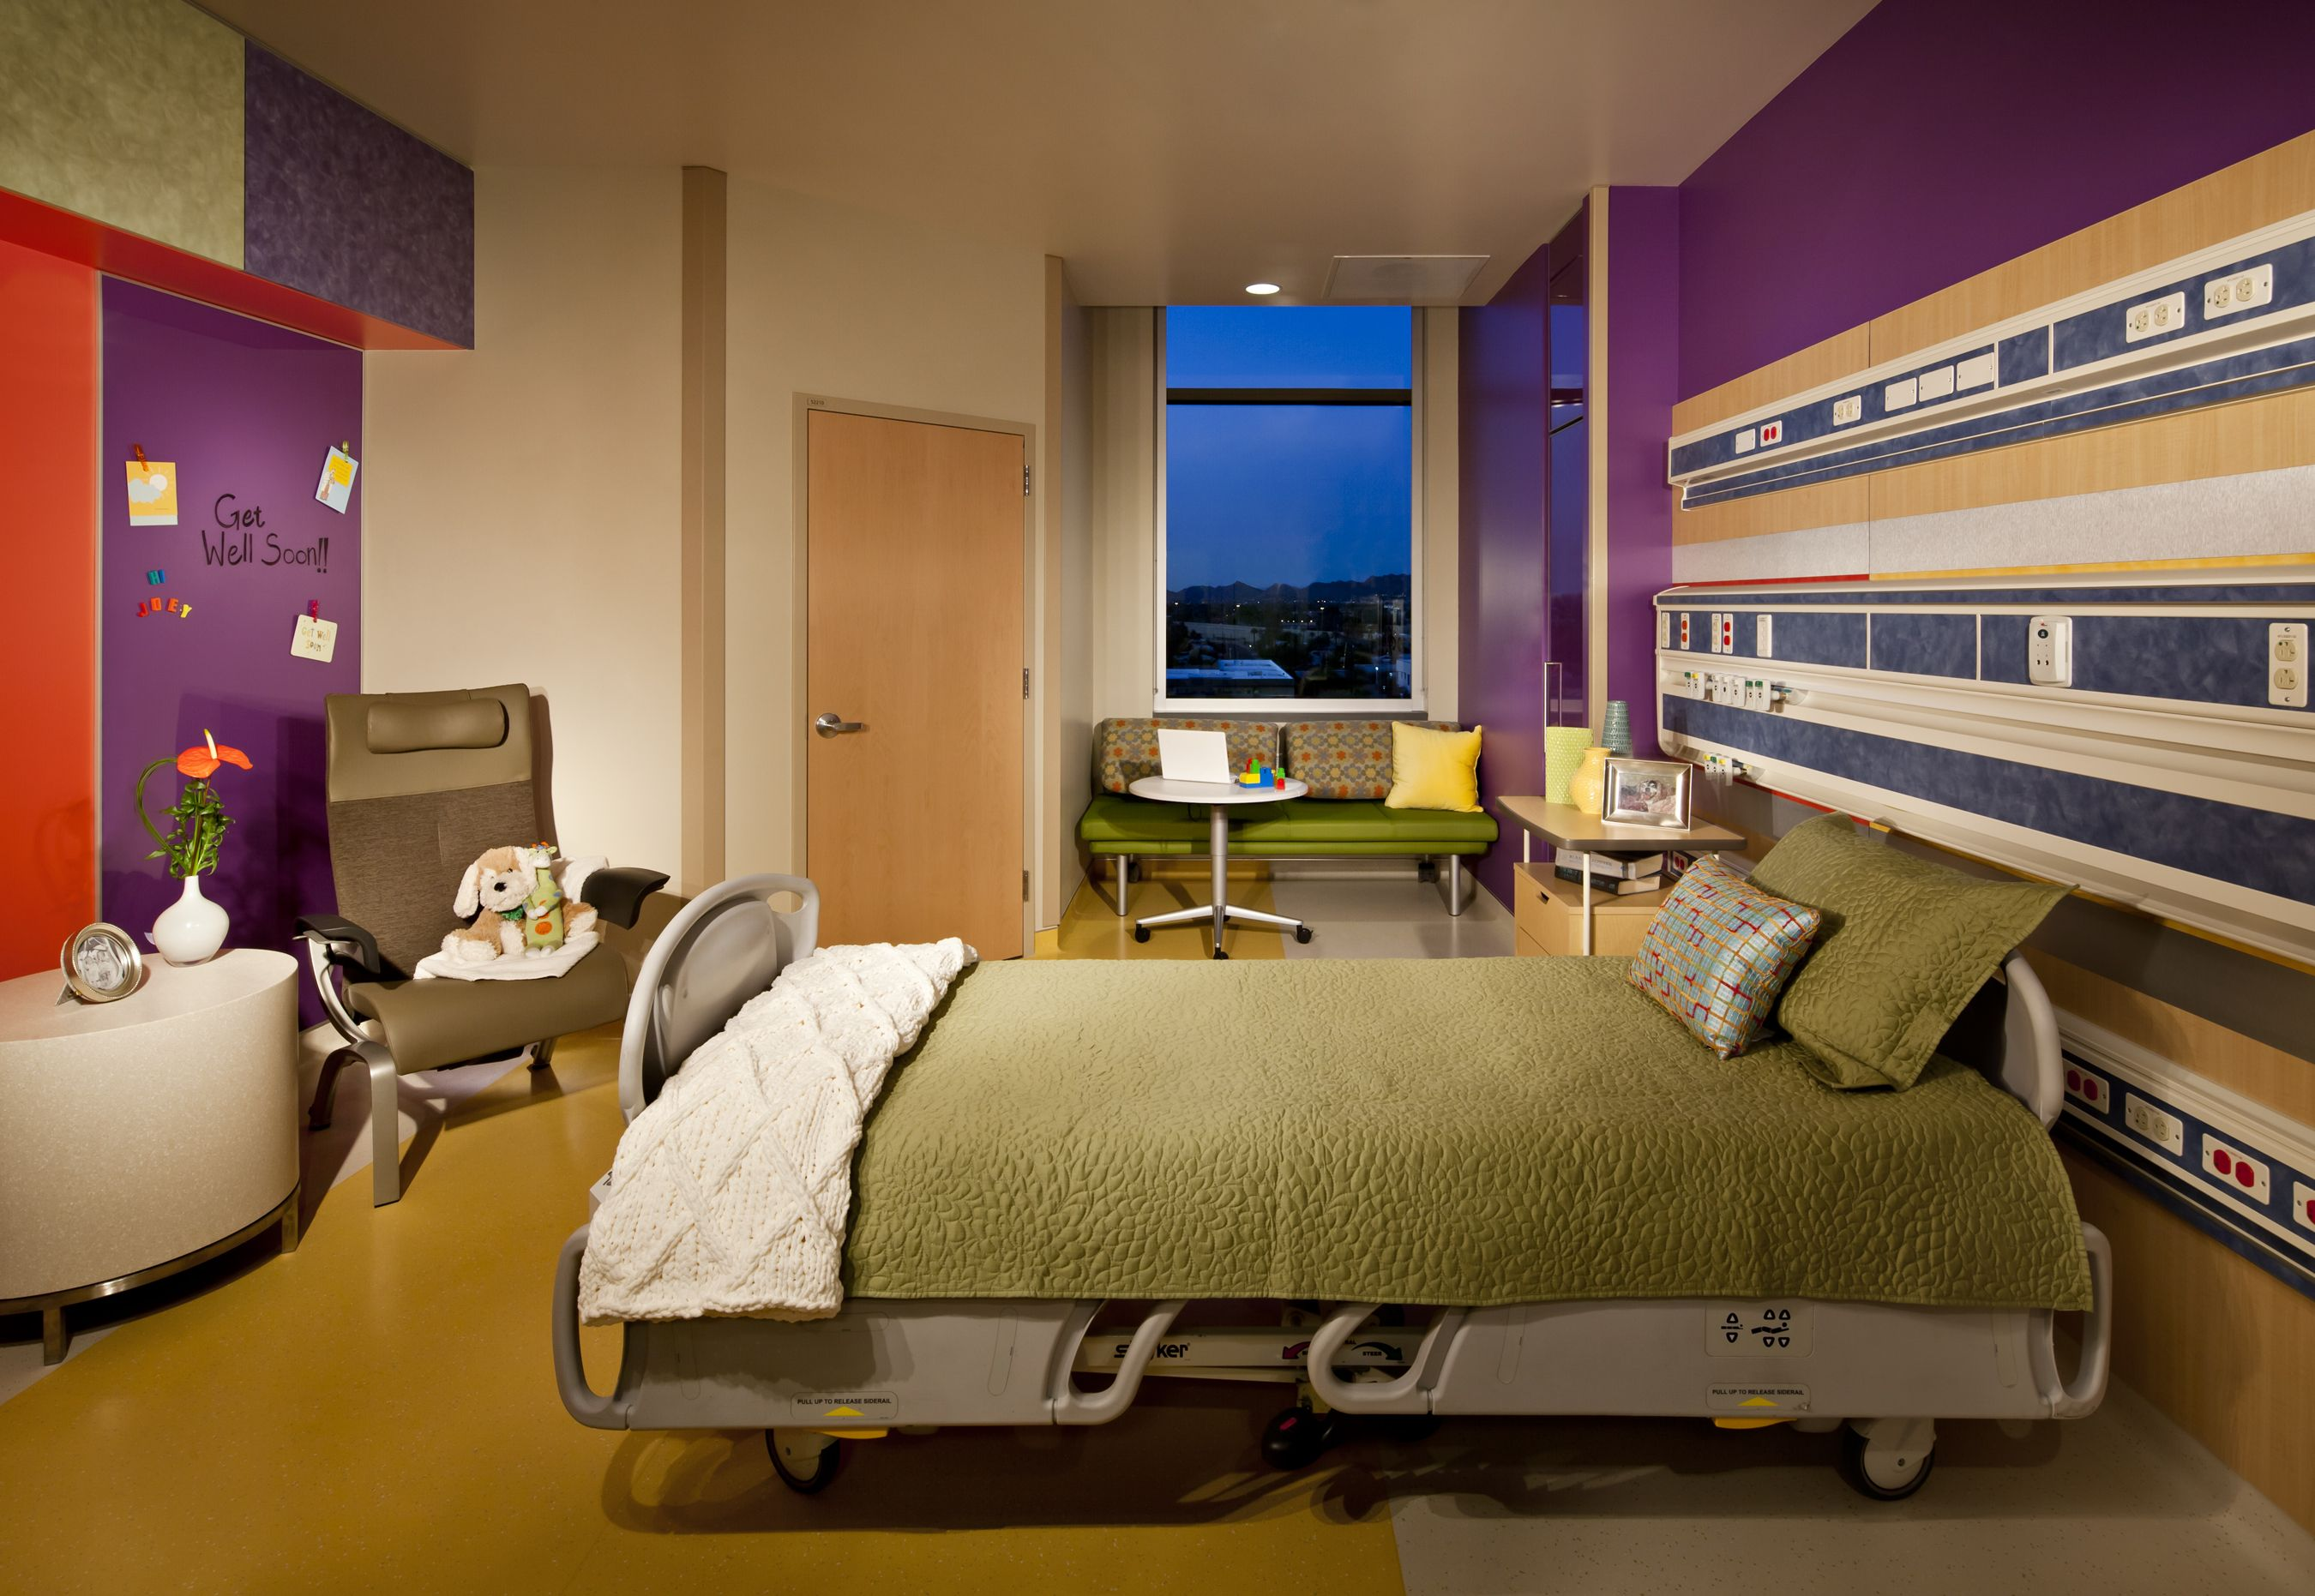 Phoenix children s hospital private room with nice colorful walls